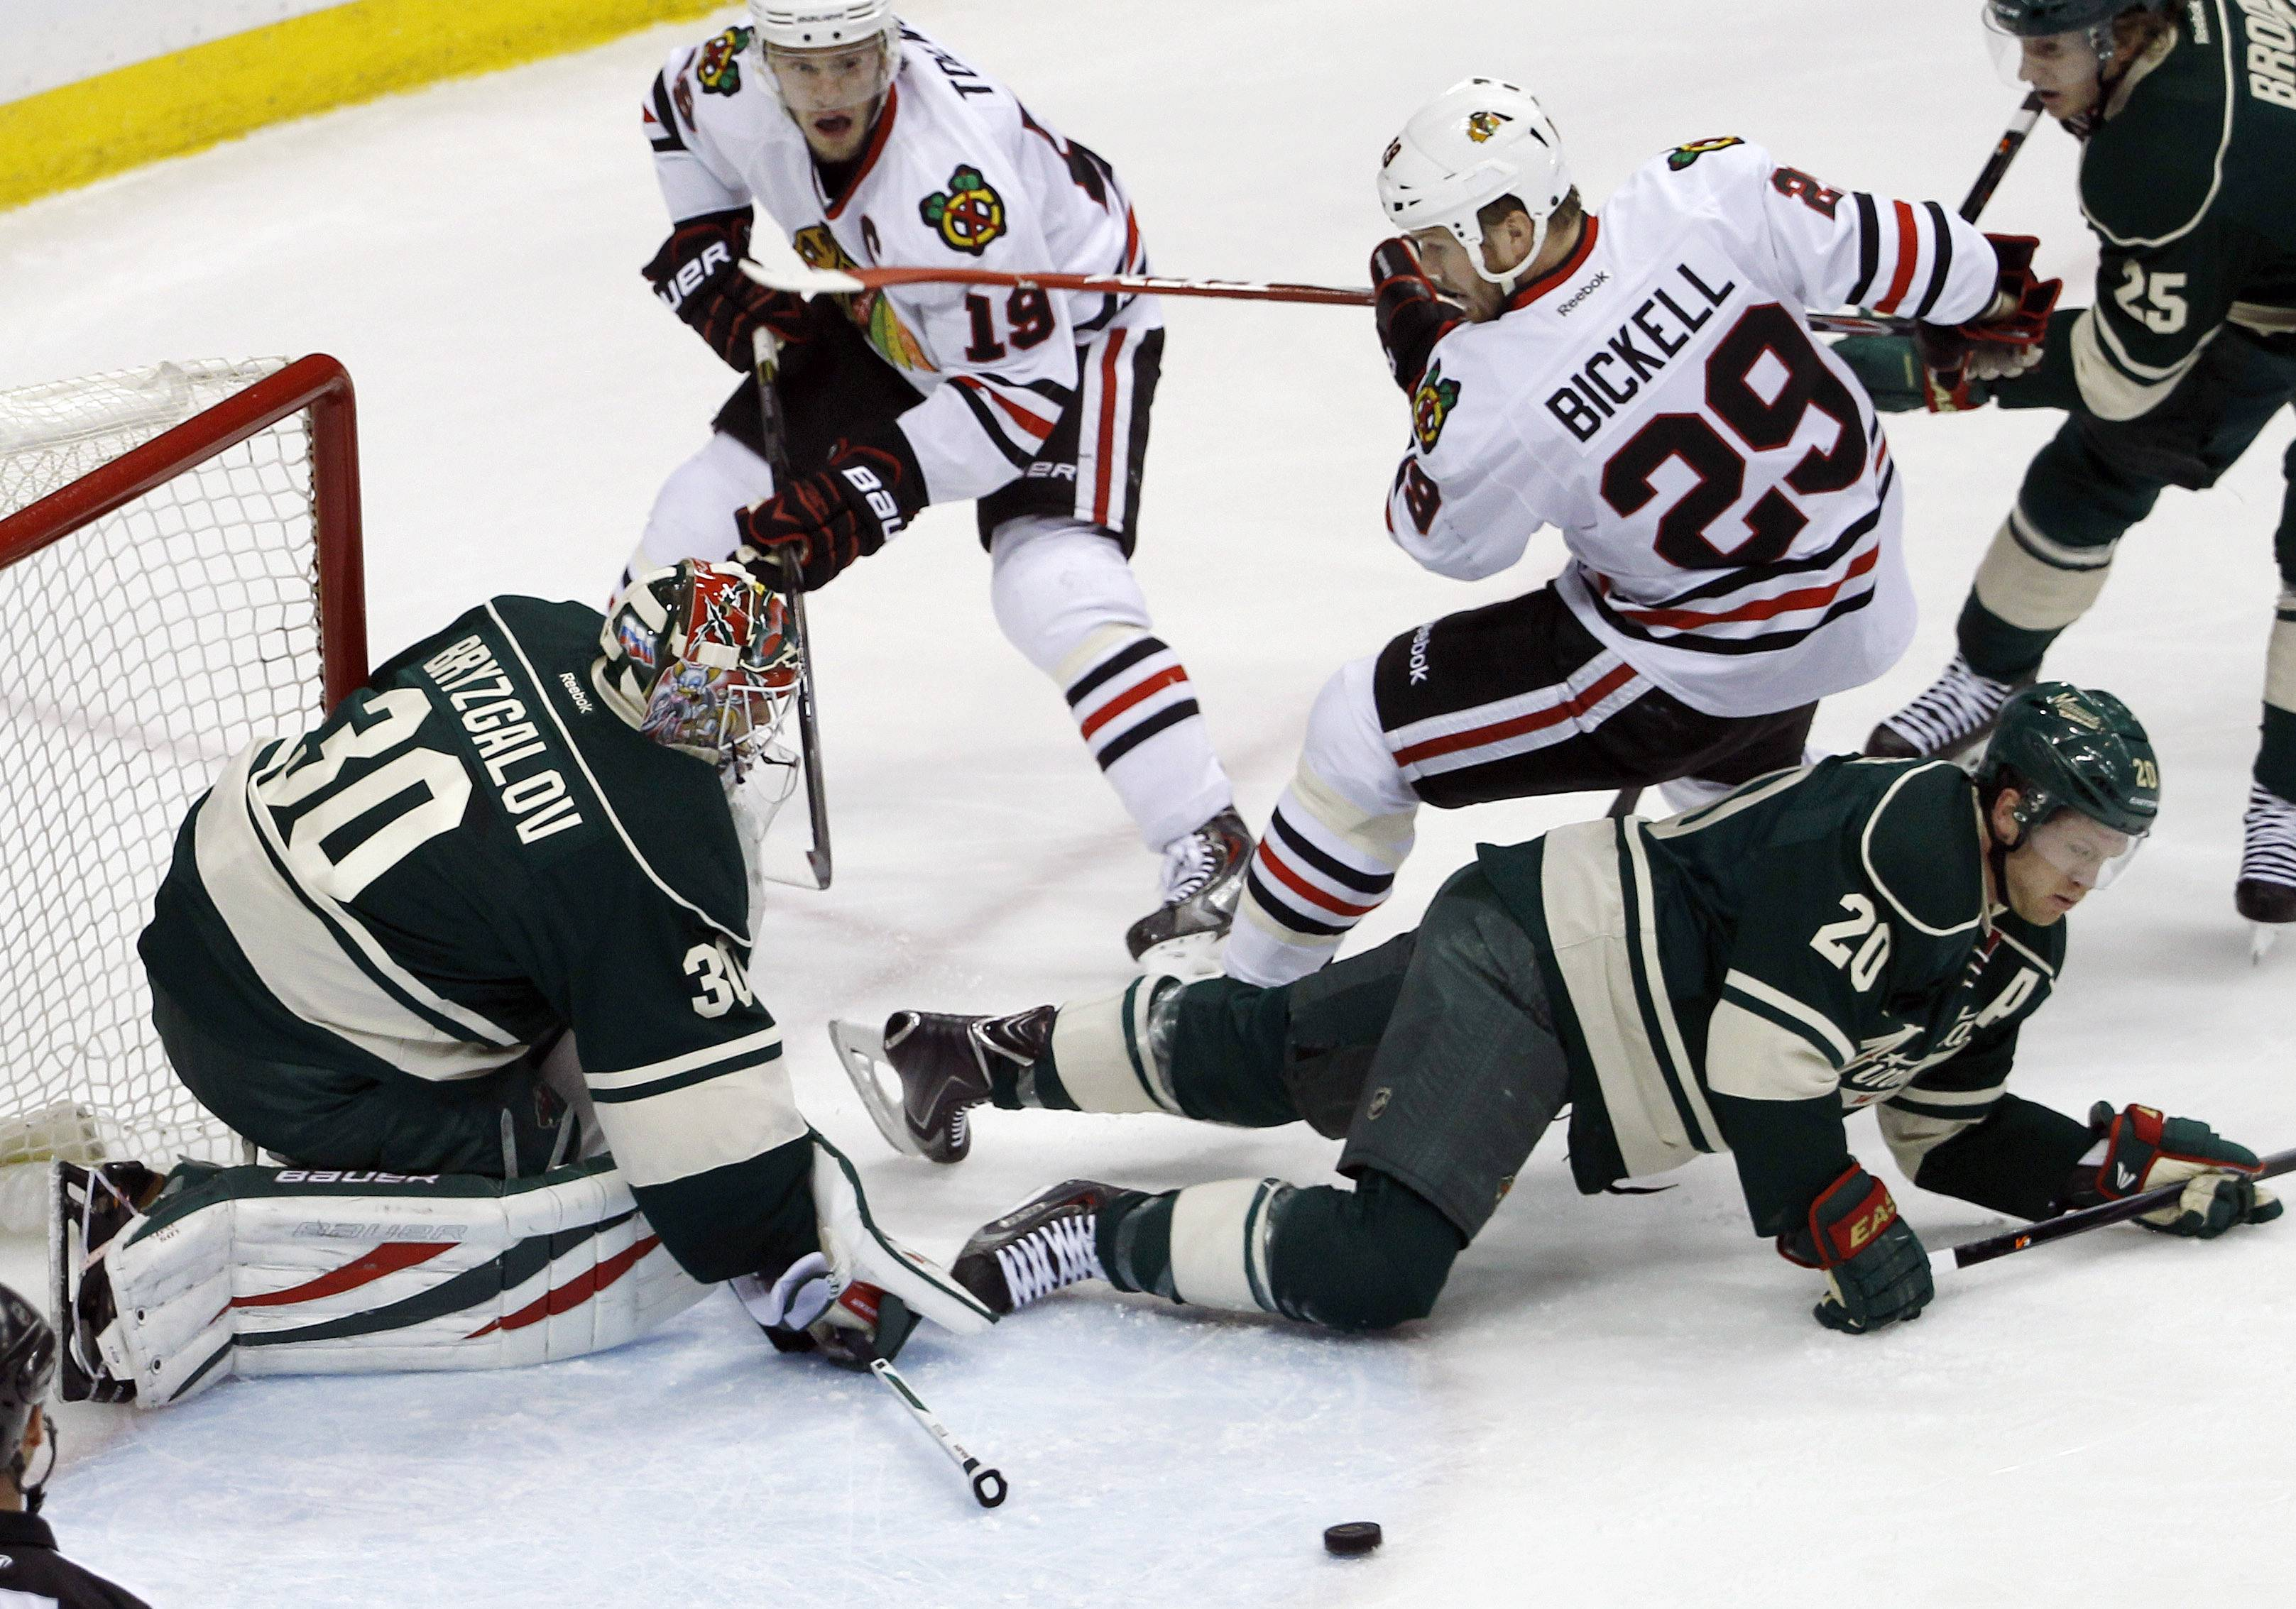 Chicago Blackhawks left wing Bryan Bickell (29) lands on Minnesota Wild defenseman Ryan Suter (20) as Wild goalie Ilya Bryzgalov (30), of Russia, deflects a shot during the first period .